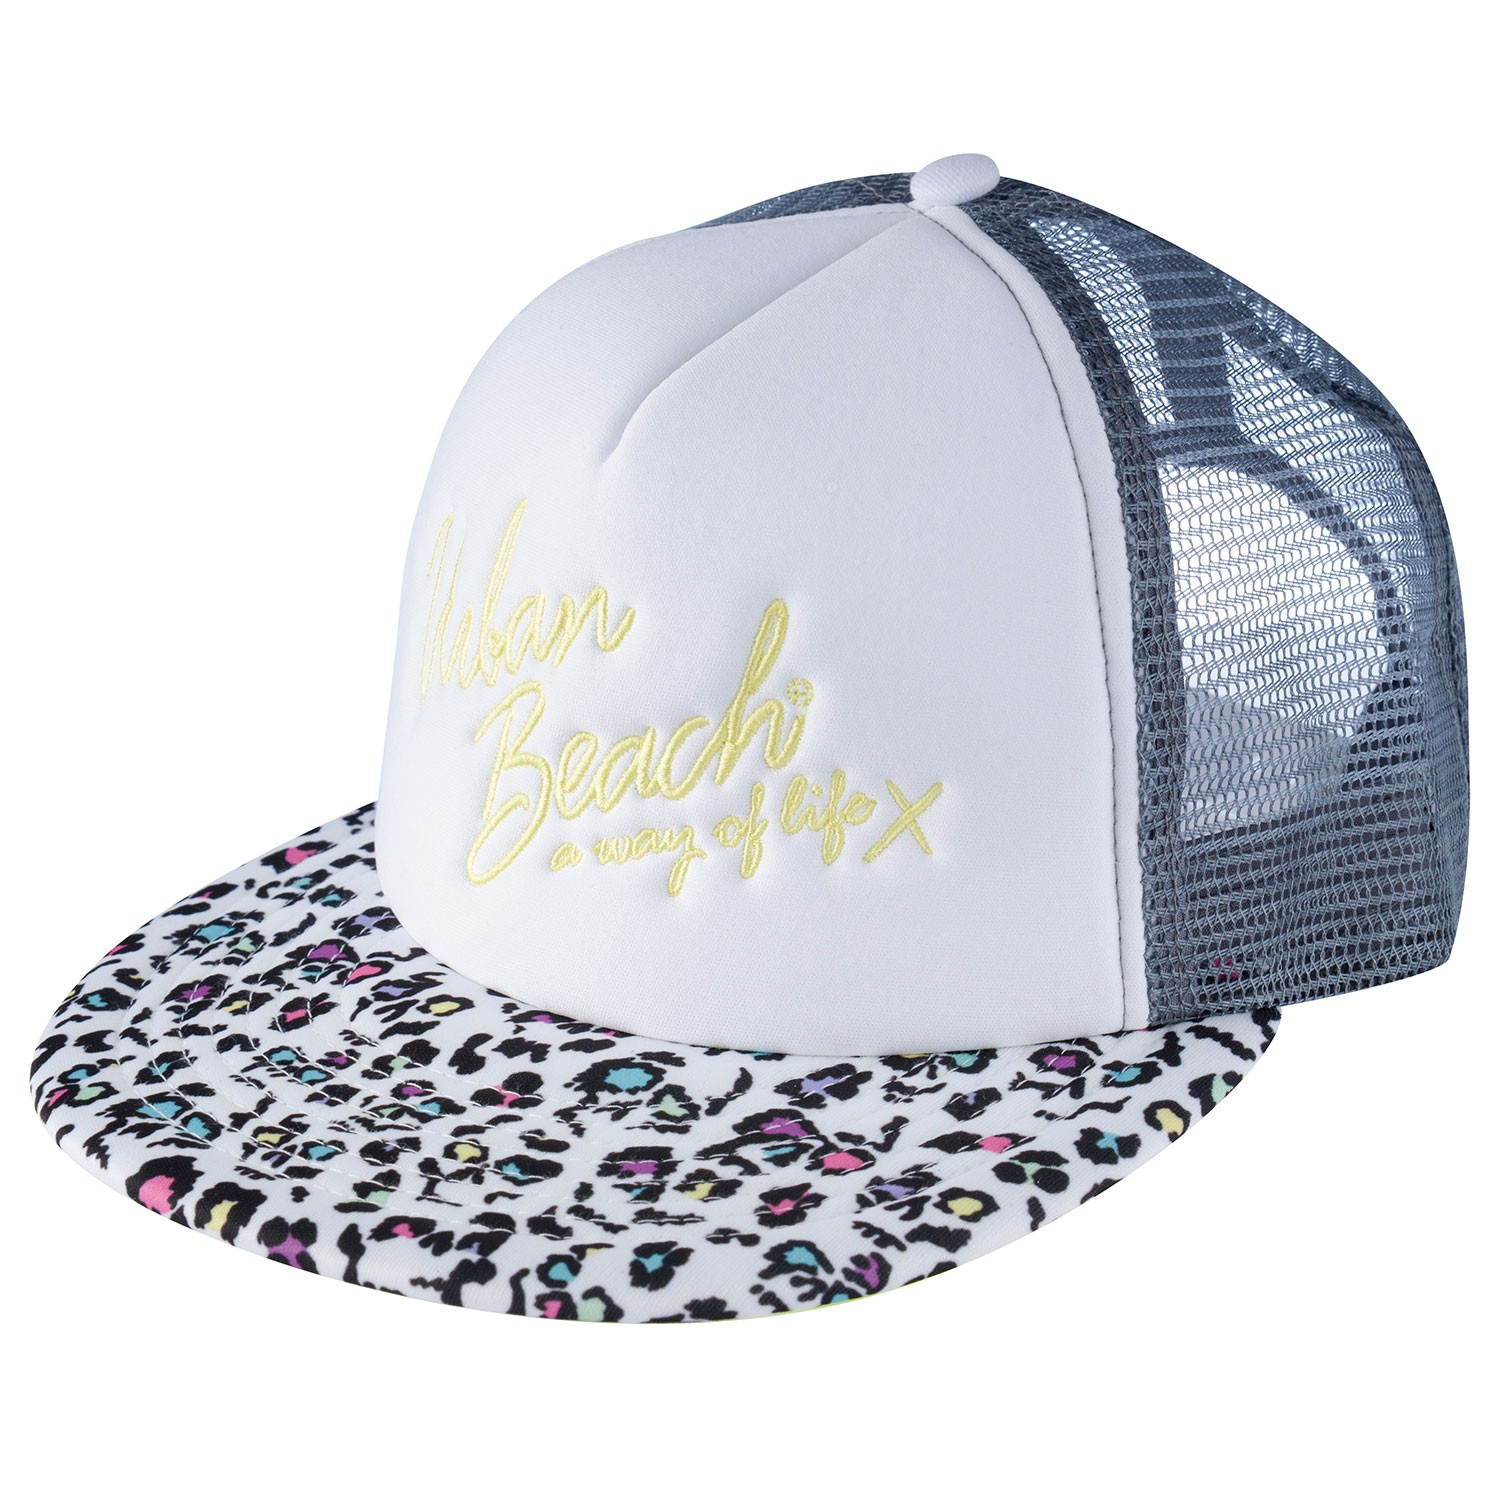 White South Beach Snapback Trucker Hat Nikki- Free Delivery Over £20 ... 26d556b9aed